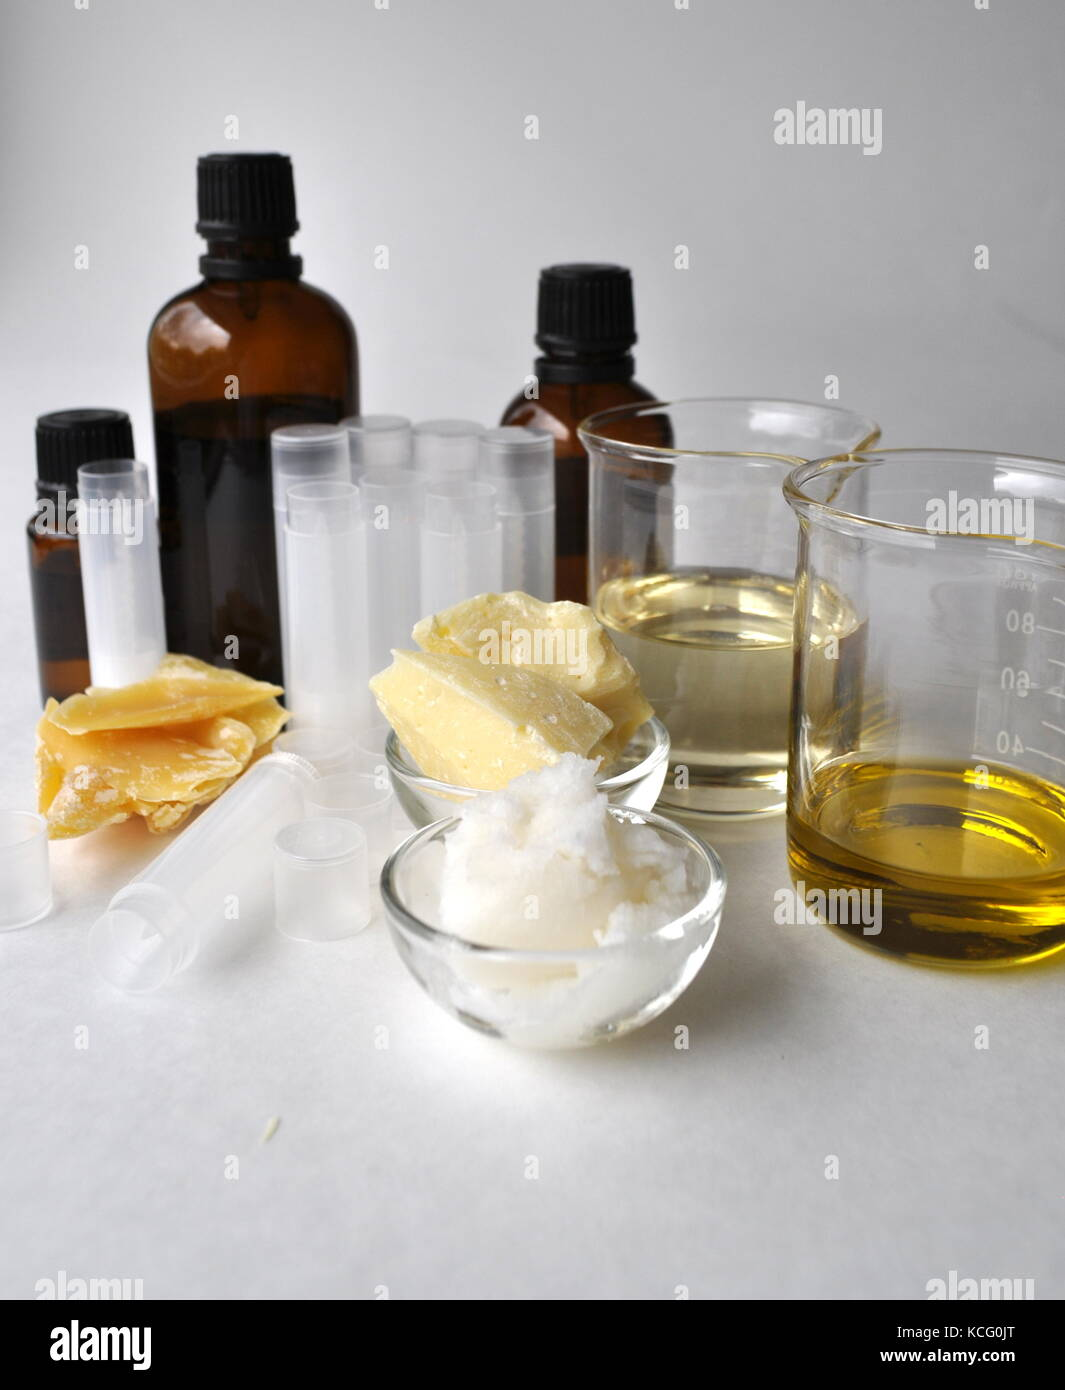 Ingredients and tools for making natural cosmetic products, skin